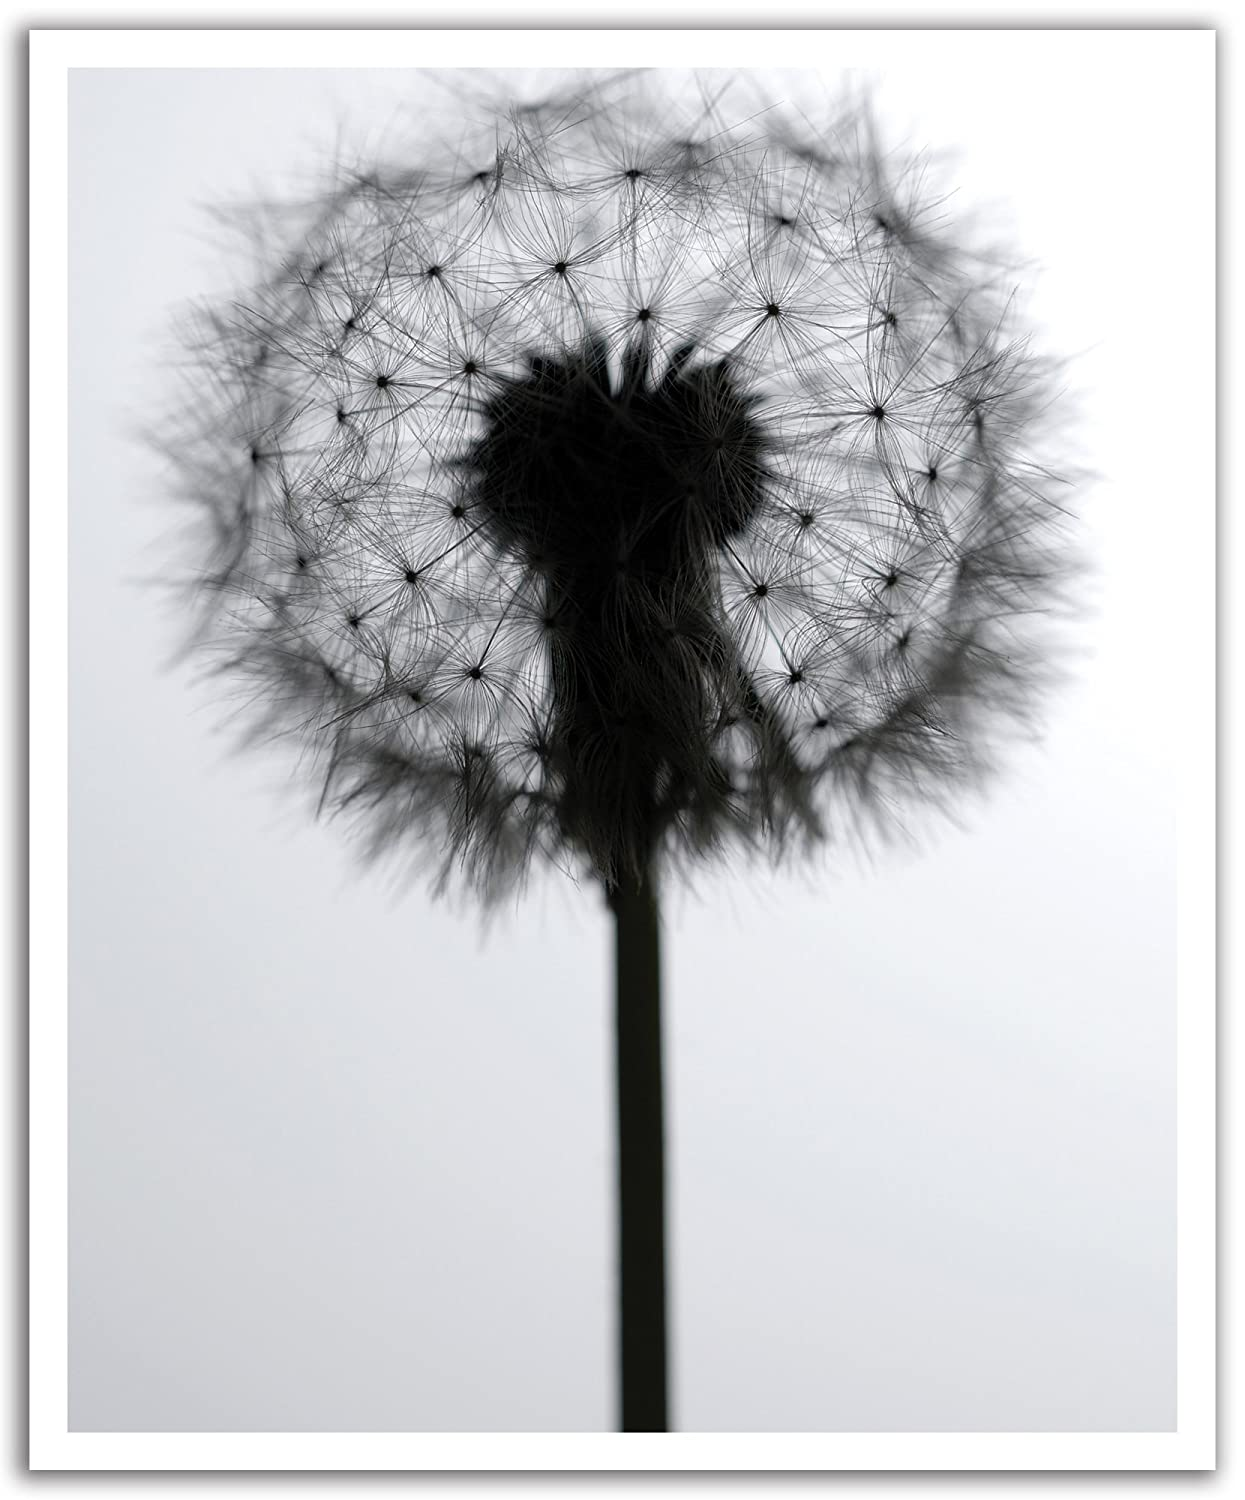 19.75-Inch x 24-Inch JP London POSLT0080 uStrip Lite Removable Wall Decal Sticker Mural Waiting for Wind Wish Dandelion